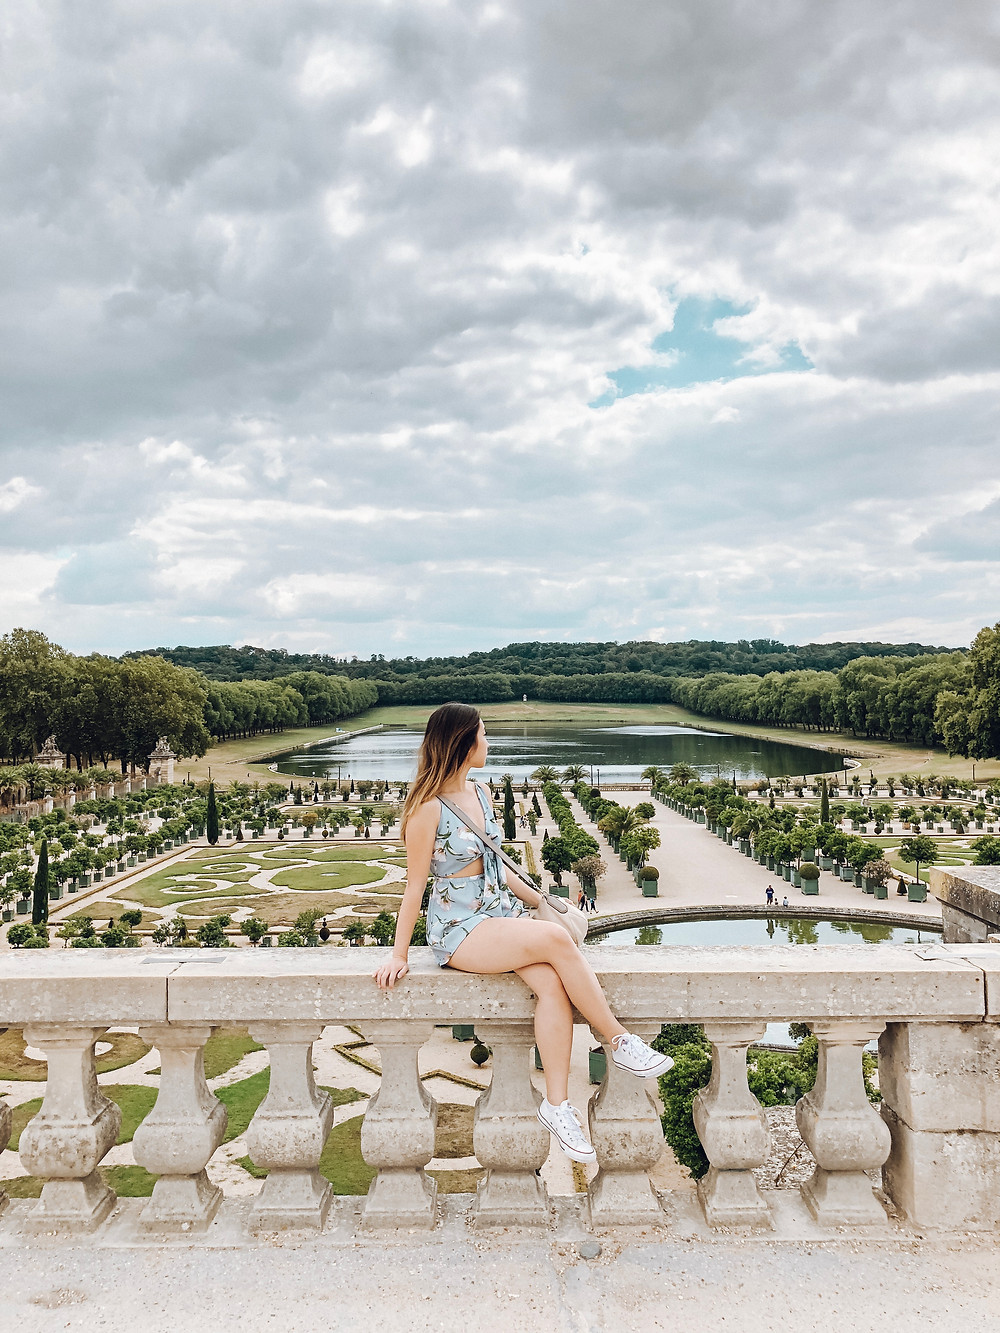 The Gardens at Palace of Versailles